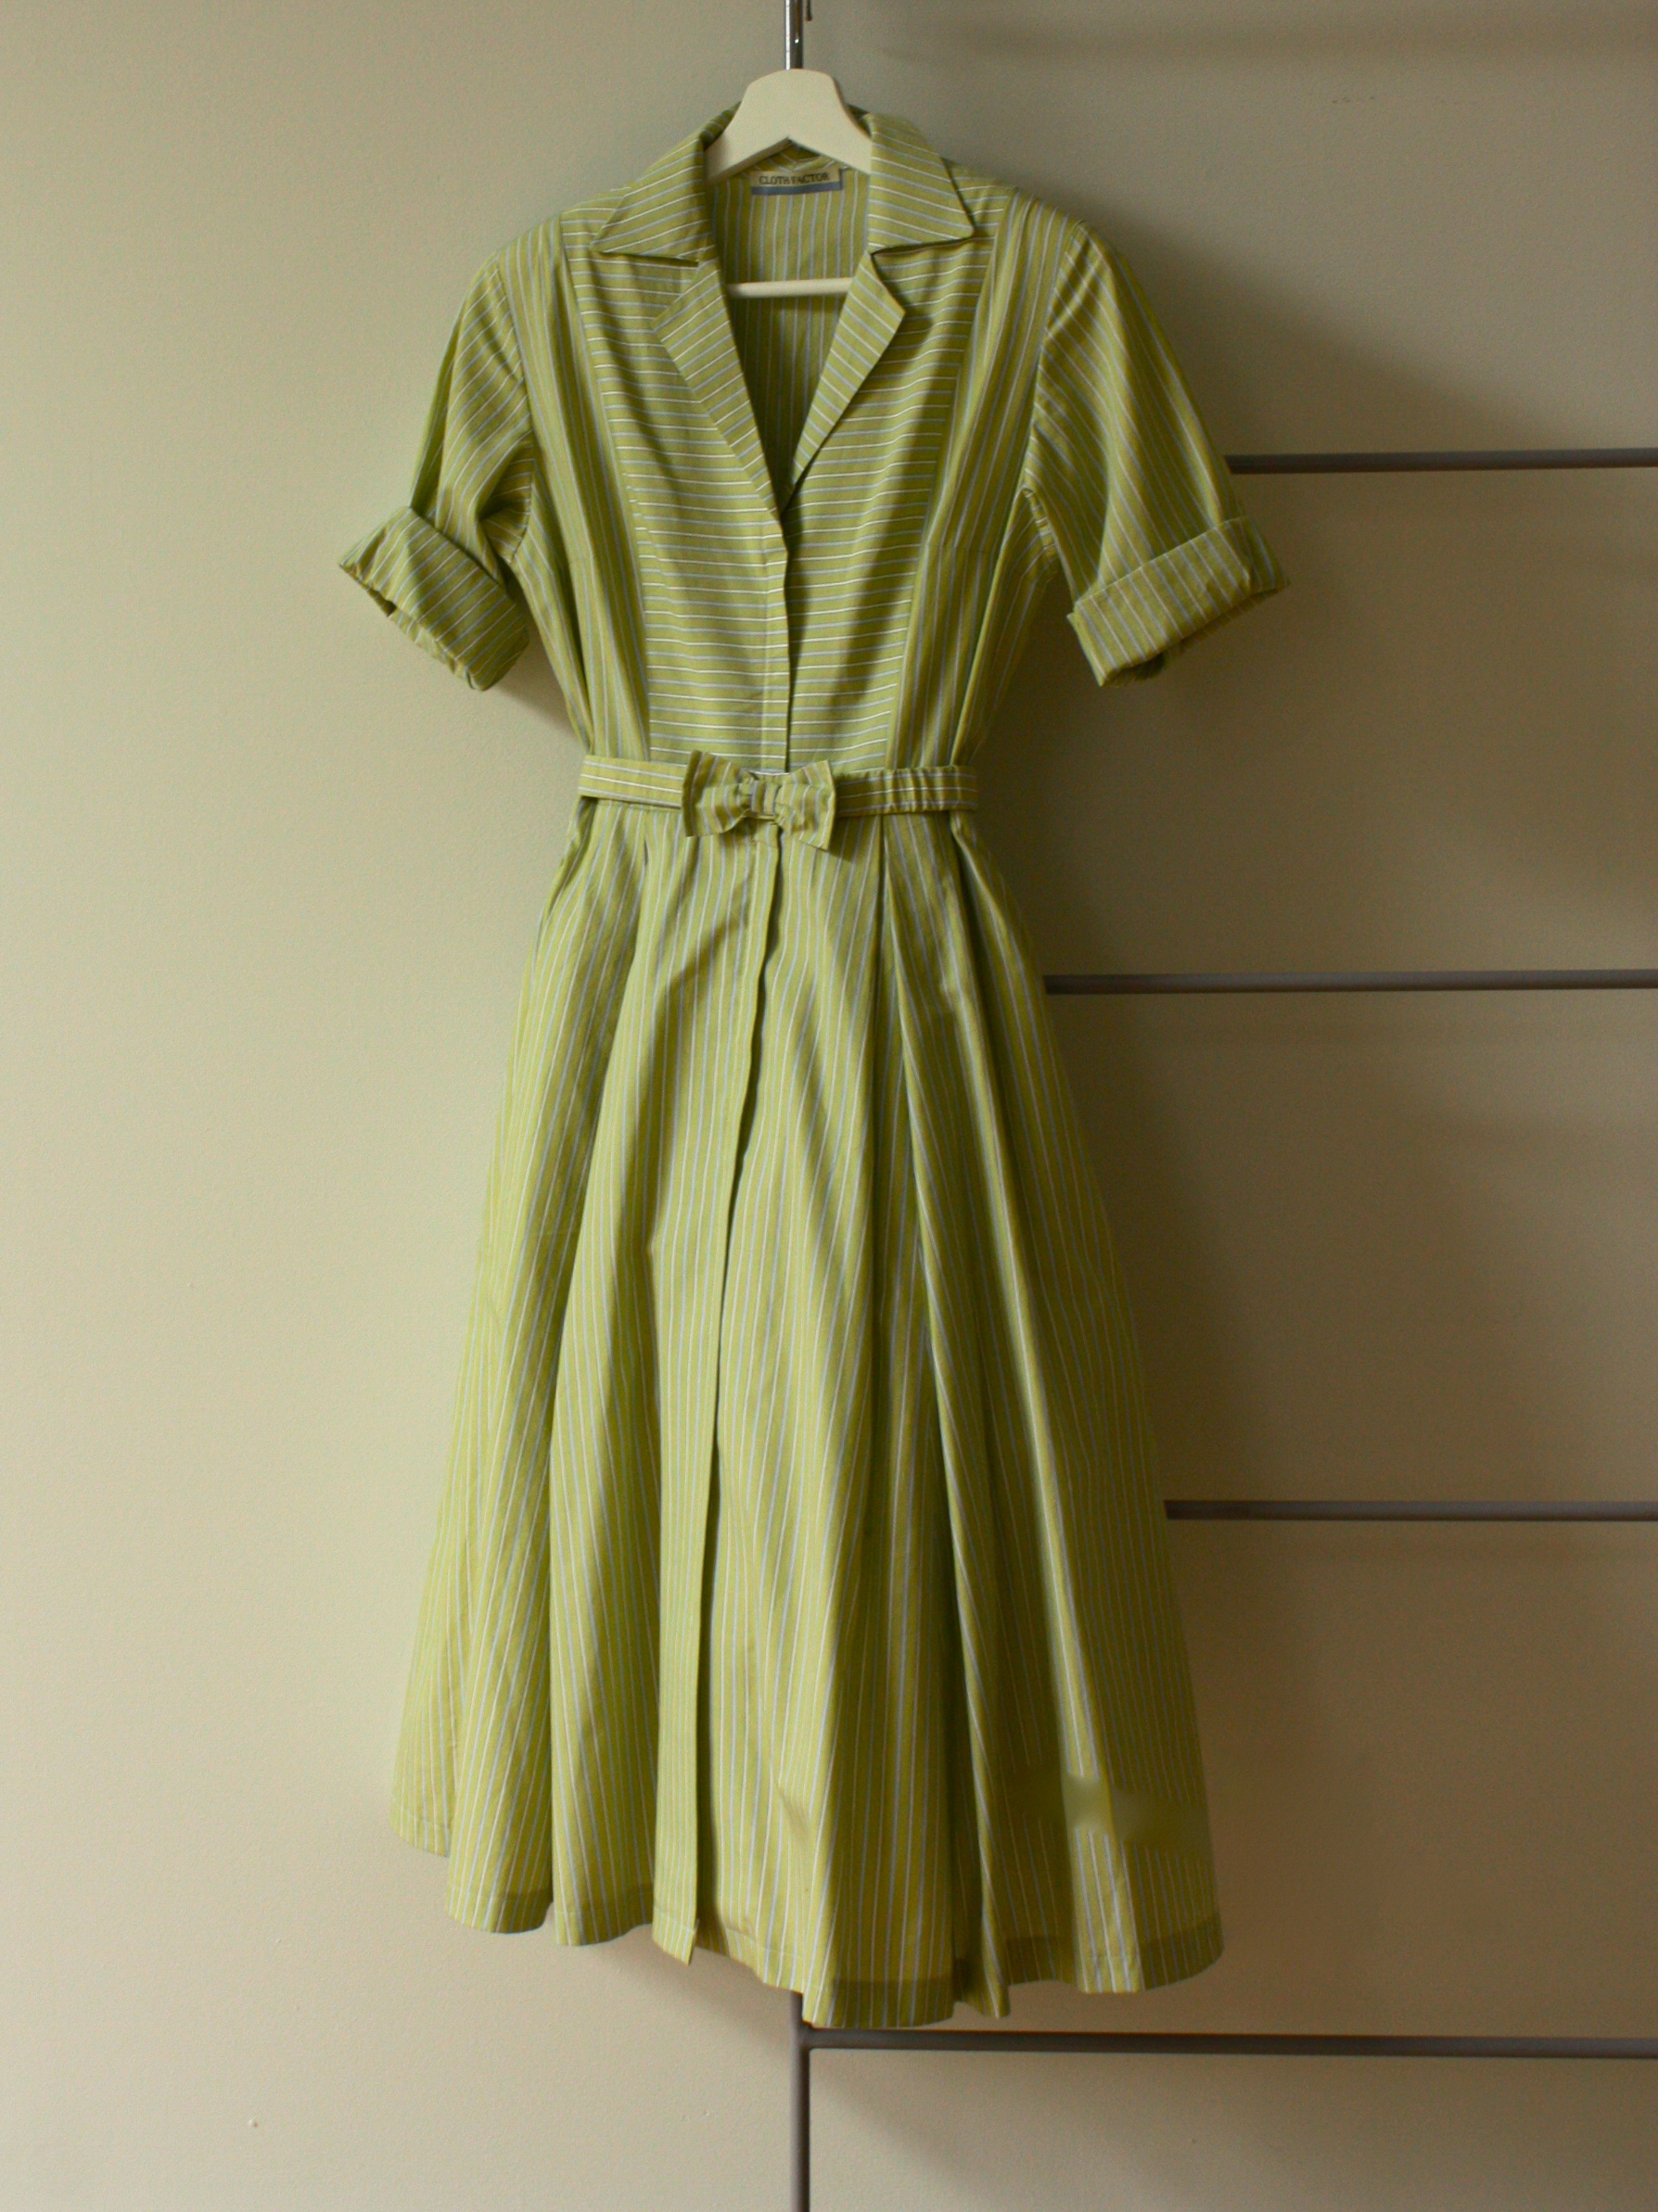 Green dress _0960 copy.jpg